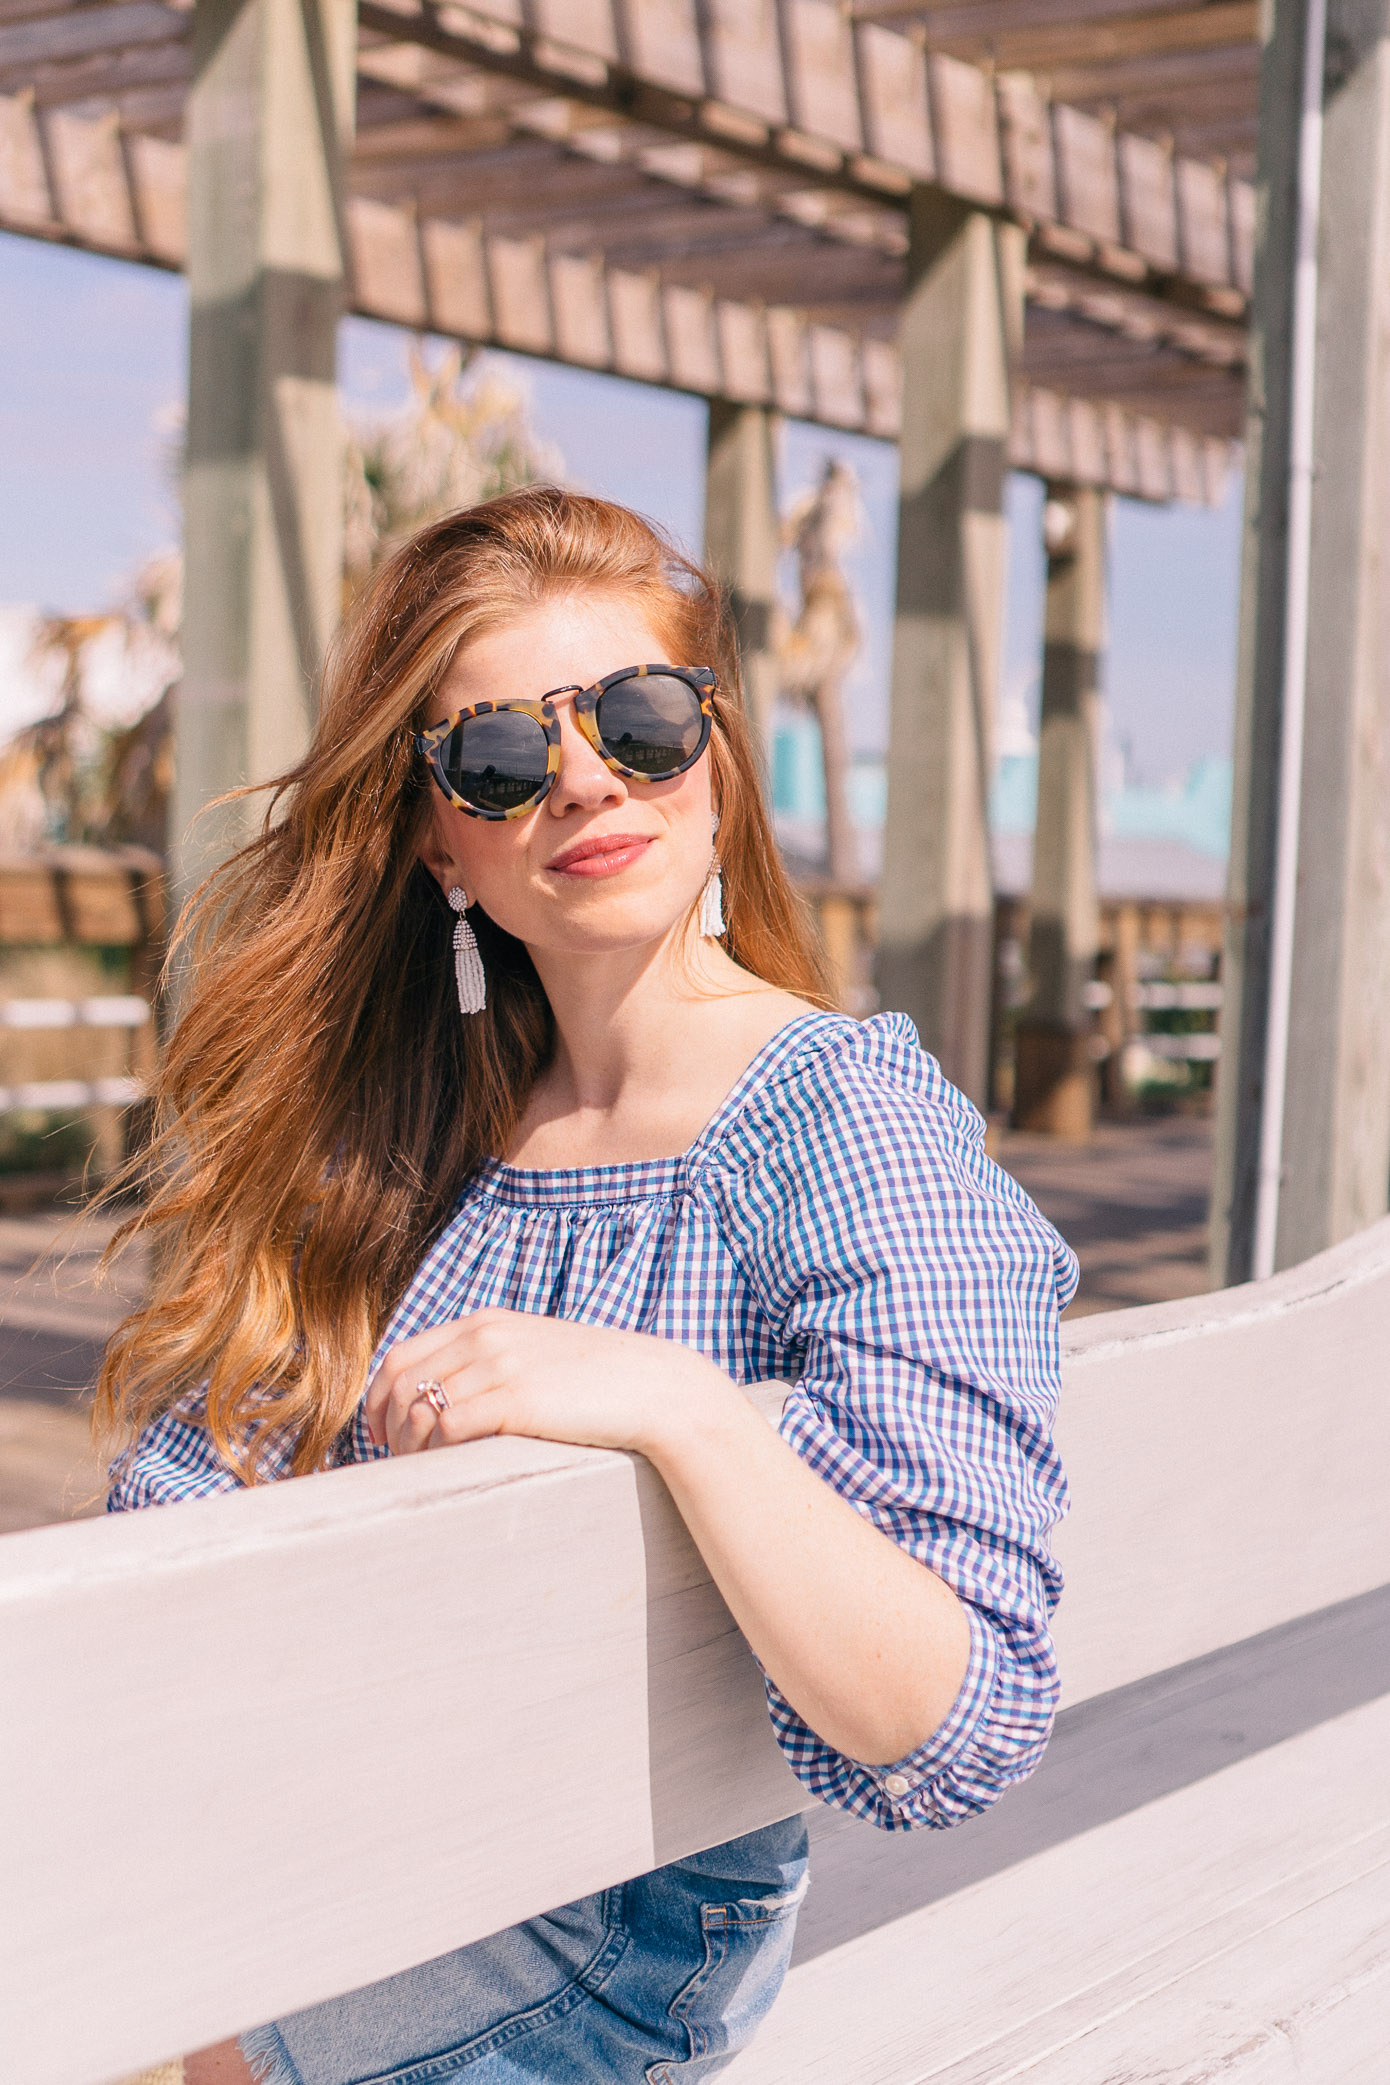 Denim Skirt under $60 | Gingham Blouse for Spring | Louella Reese Life & Style Blog